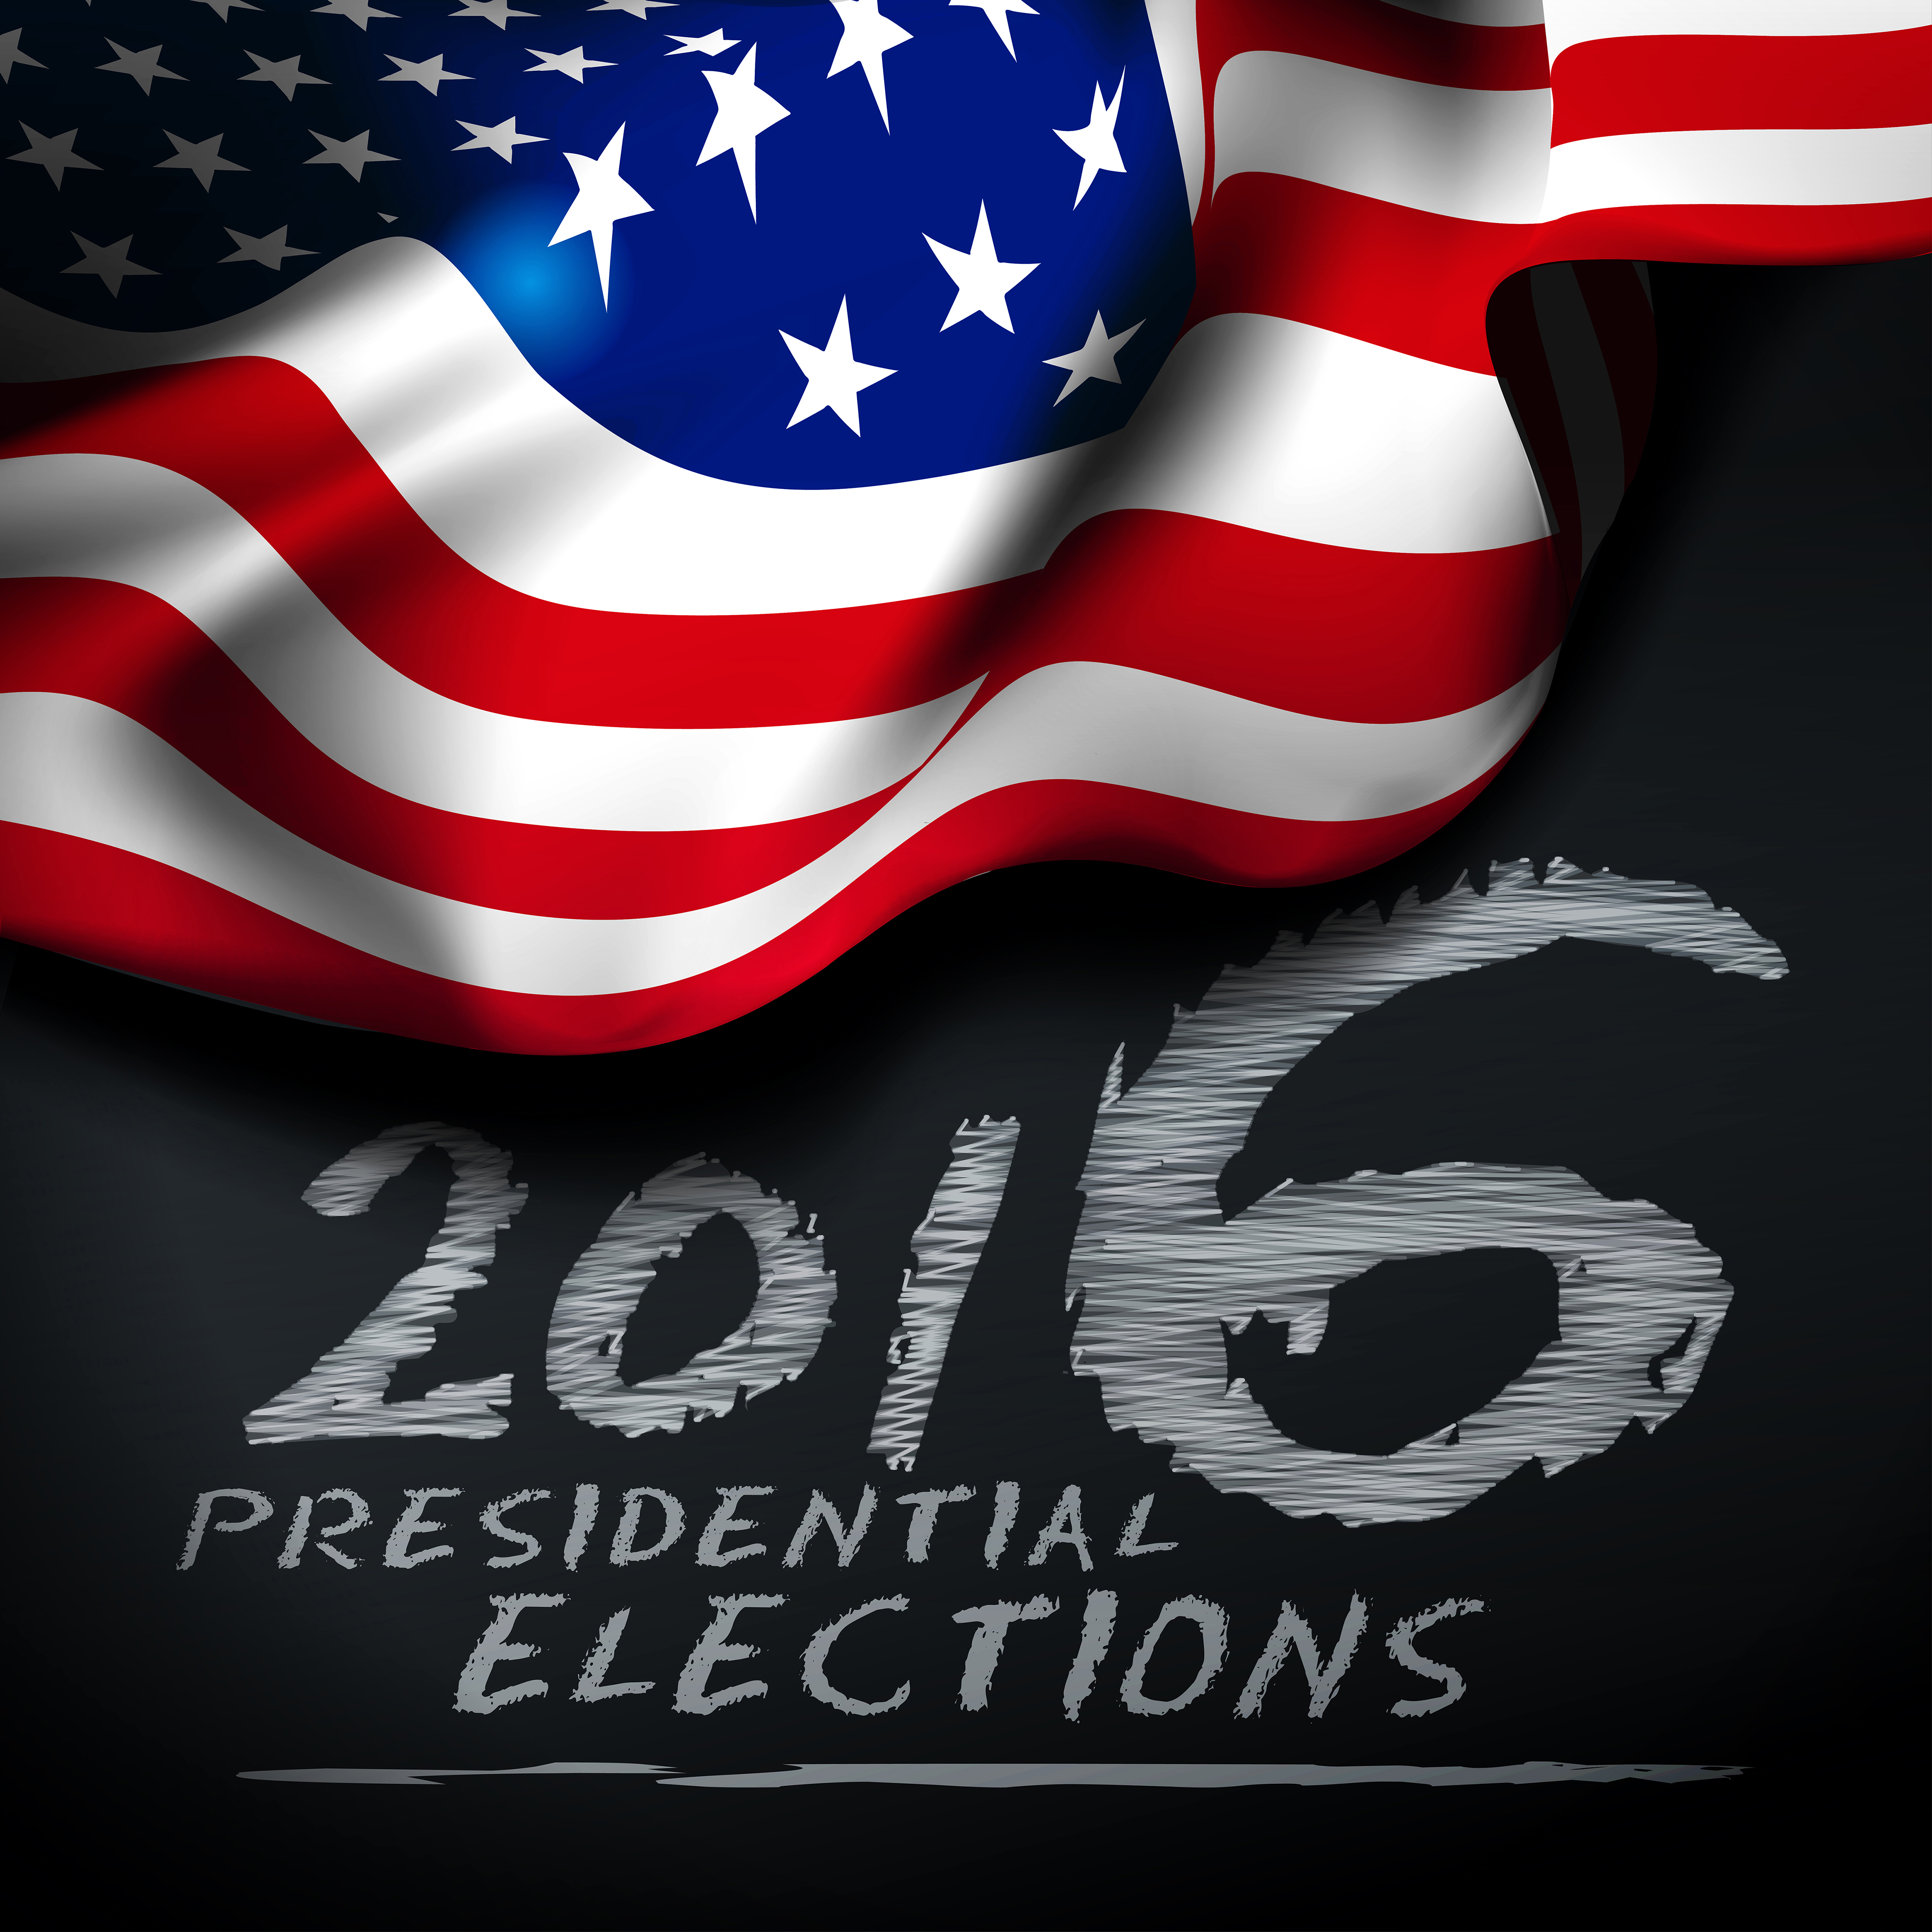 Presidential elections in the United States. Vector illustration with the American flag on the background of chalkboards